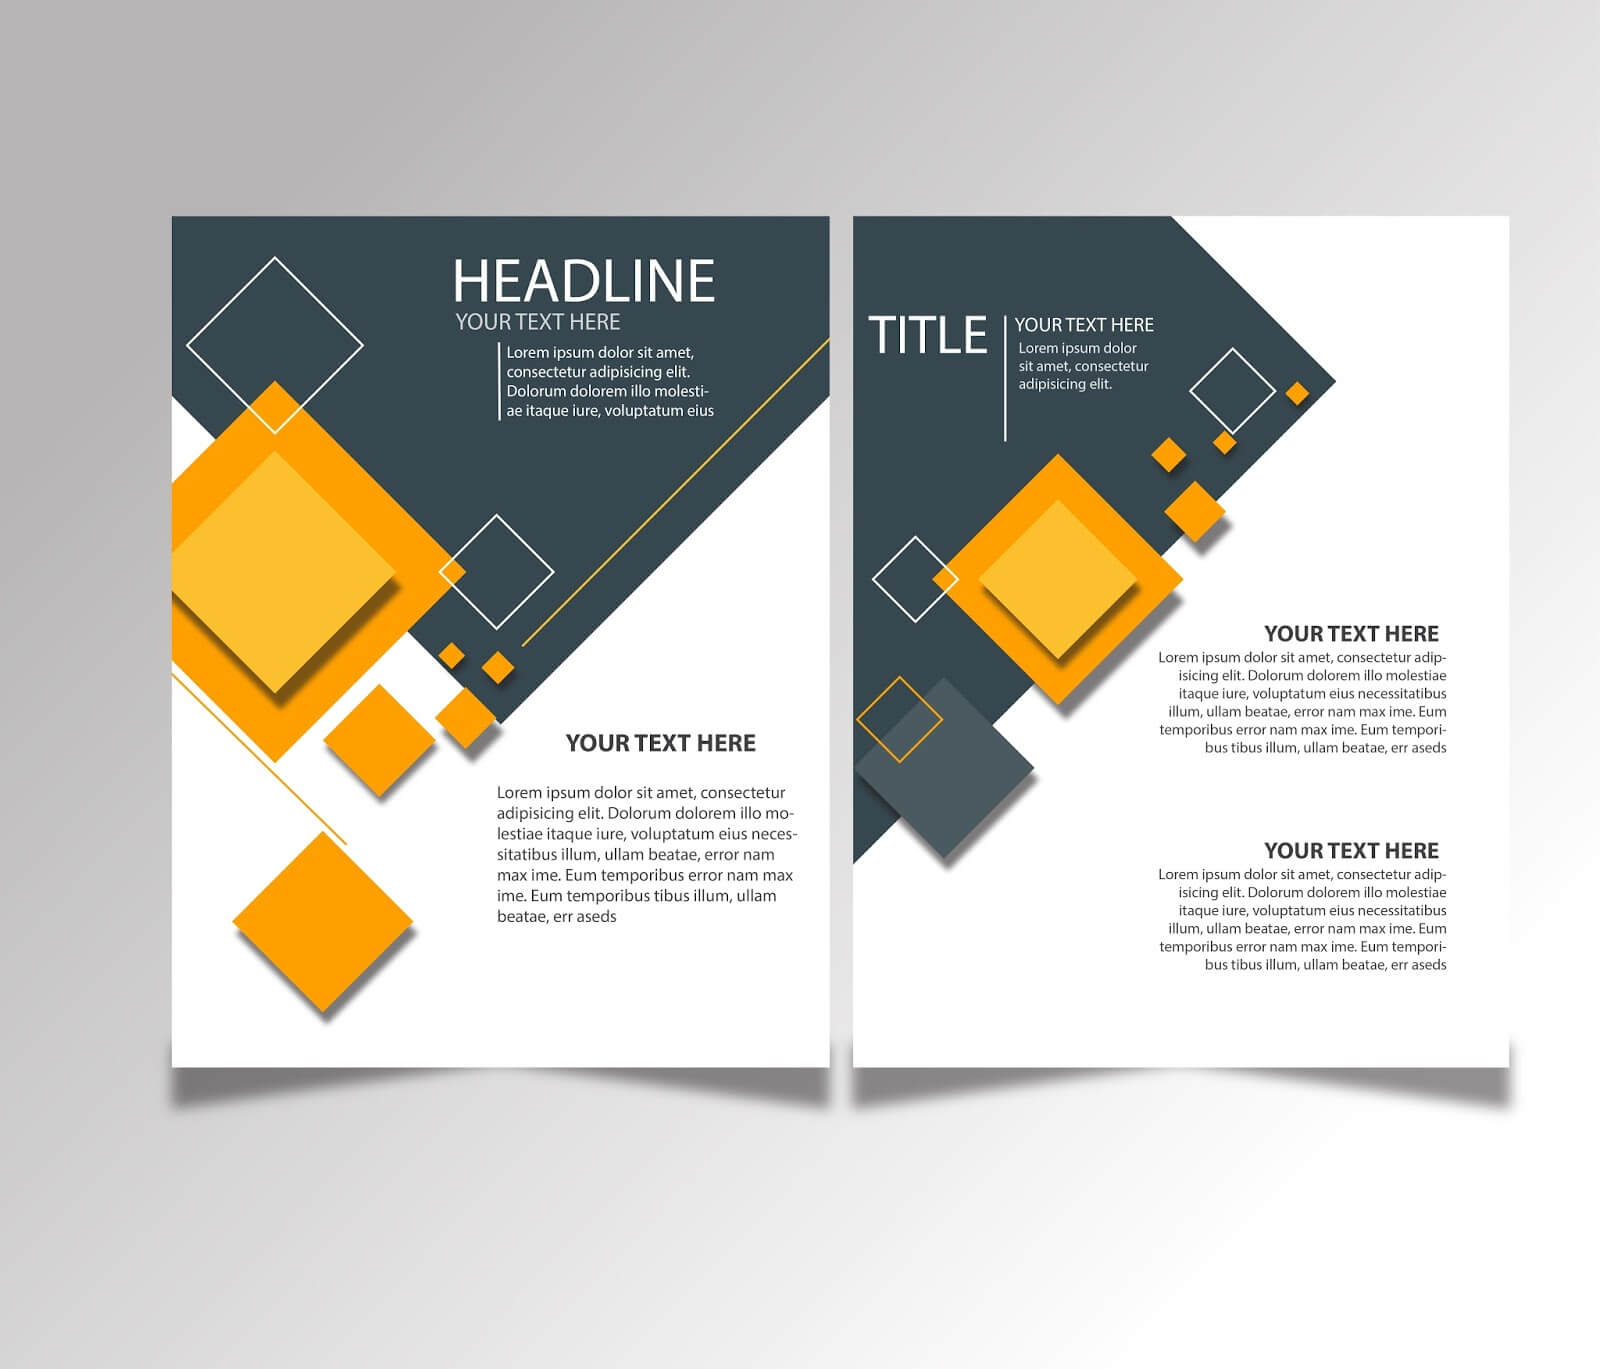 Free Download Brochure Design Templates Ai Files - Ideosprocess Within Ai Brochure Templates Free Download